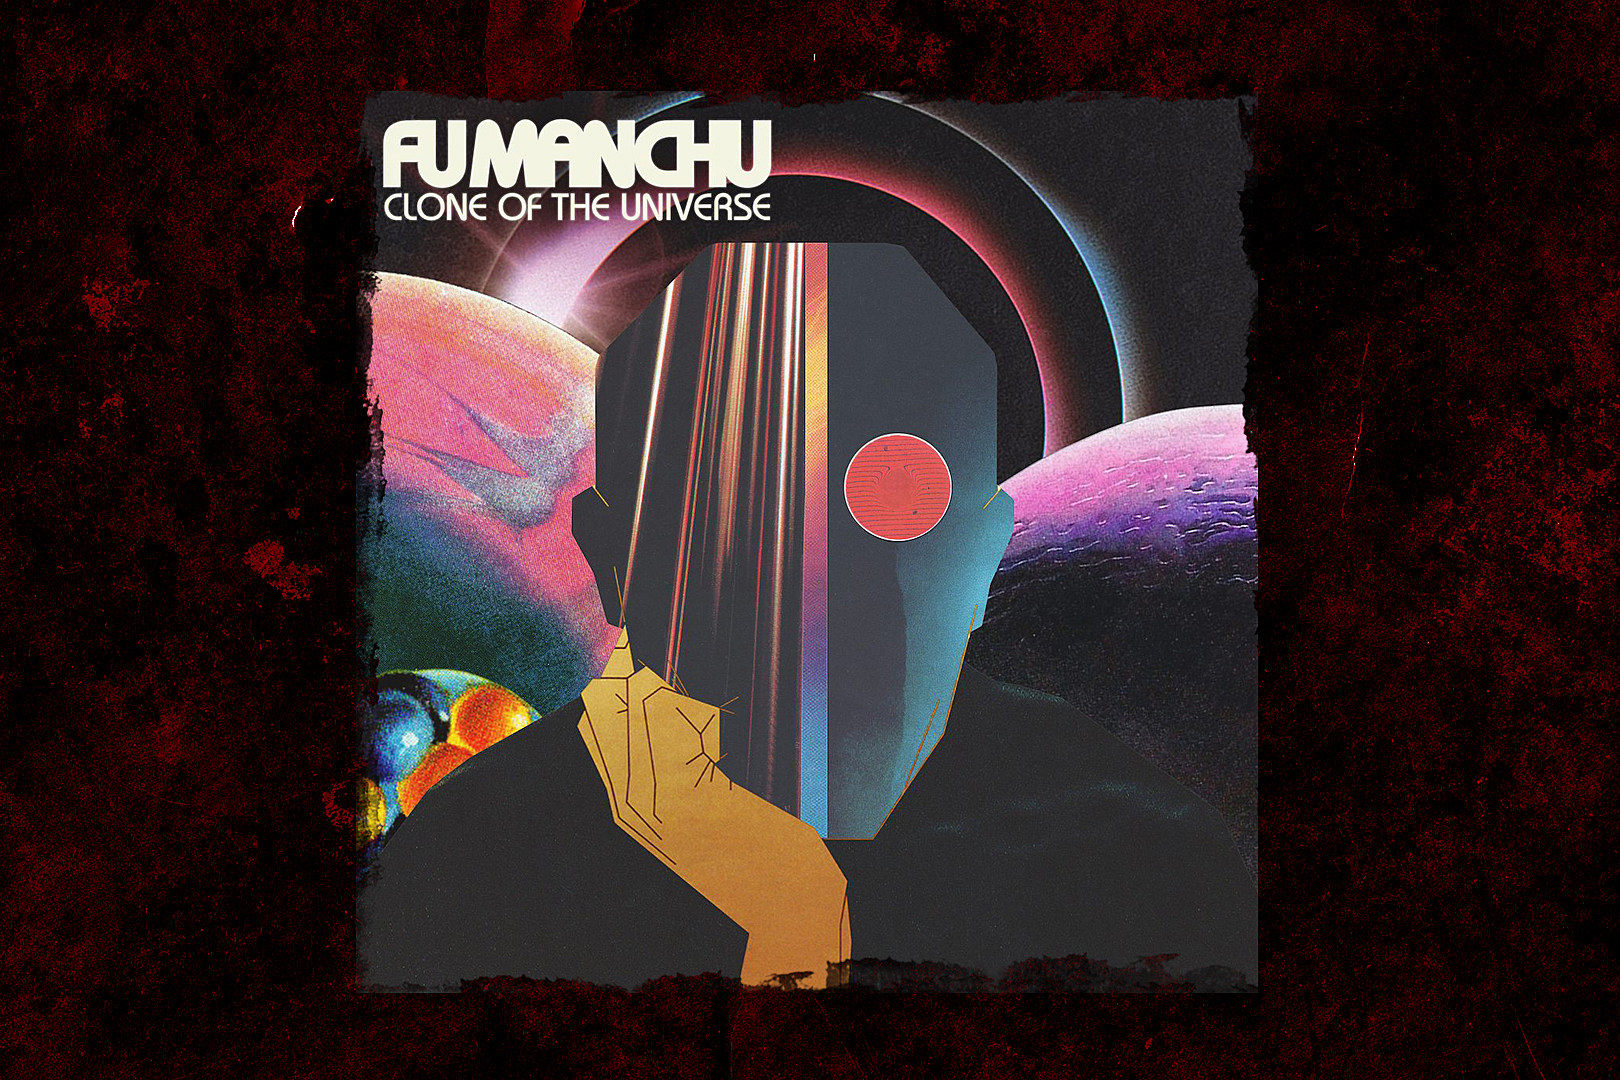 Fu Manchu Break Their Mold and Through the Stratosphere on